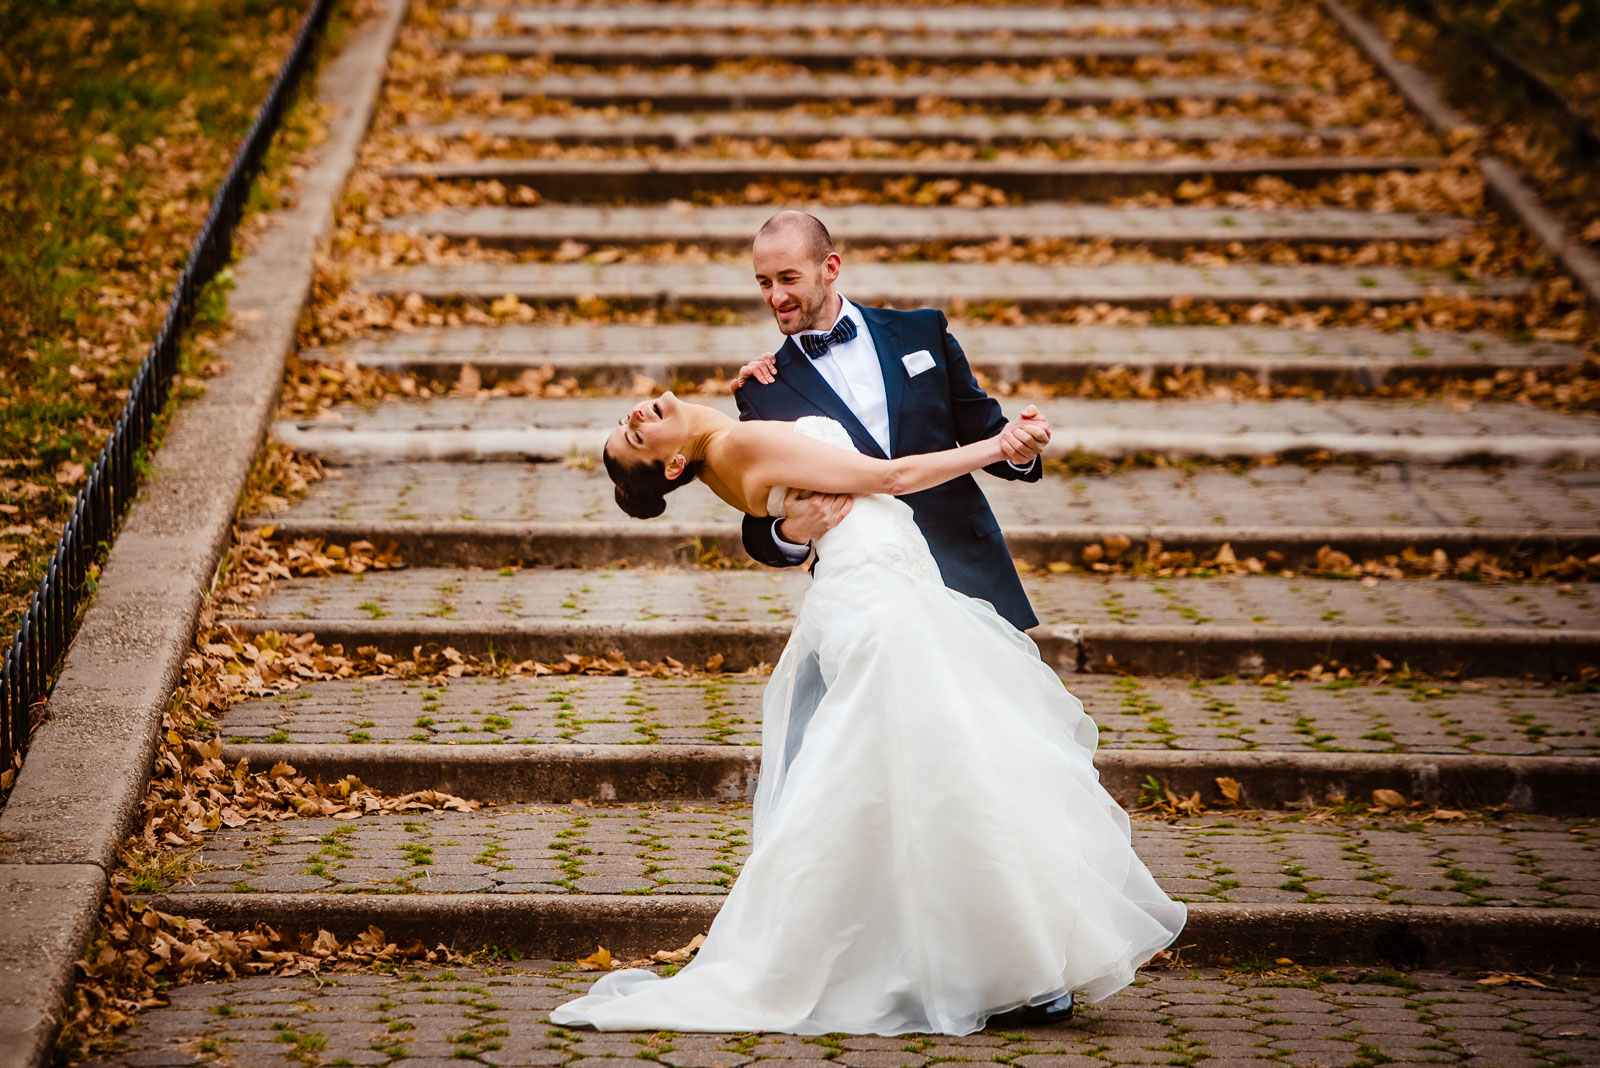 Bride and groom's dance on steps